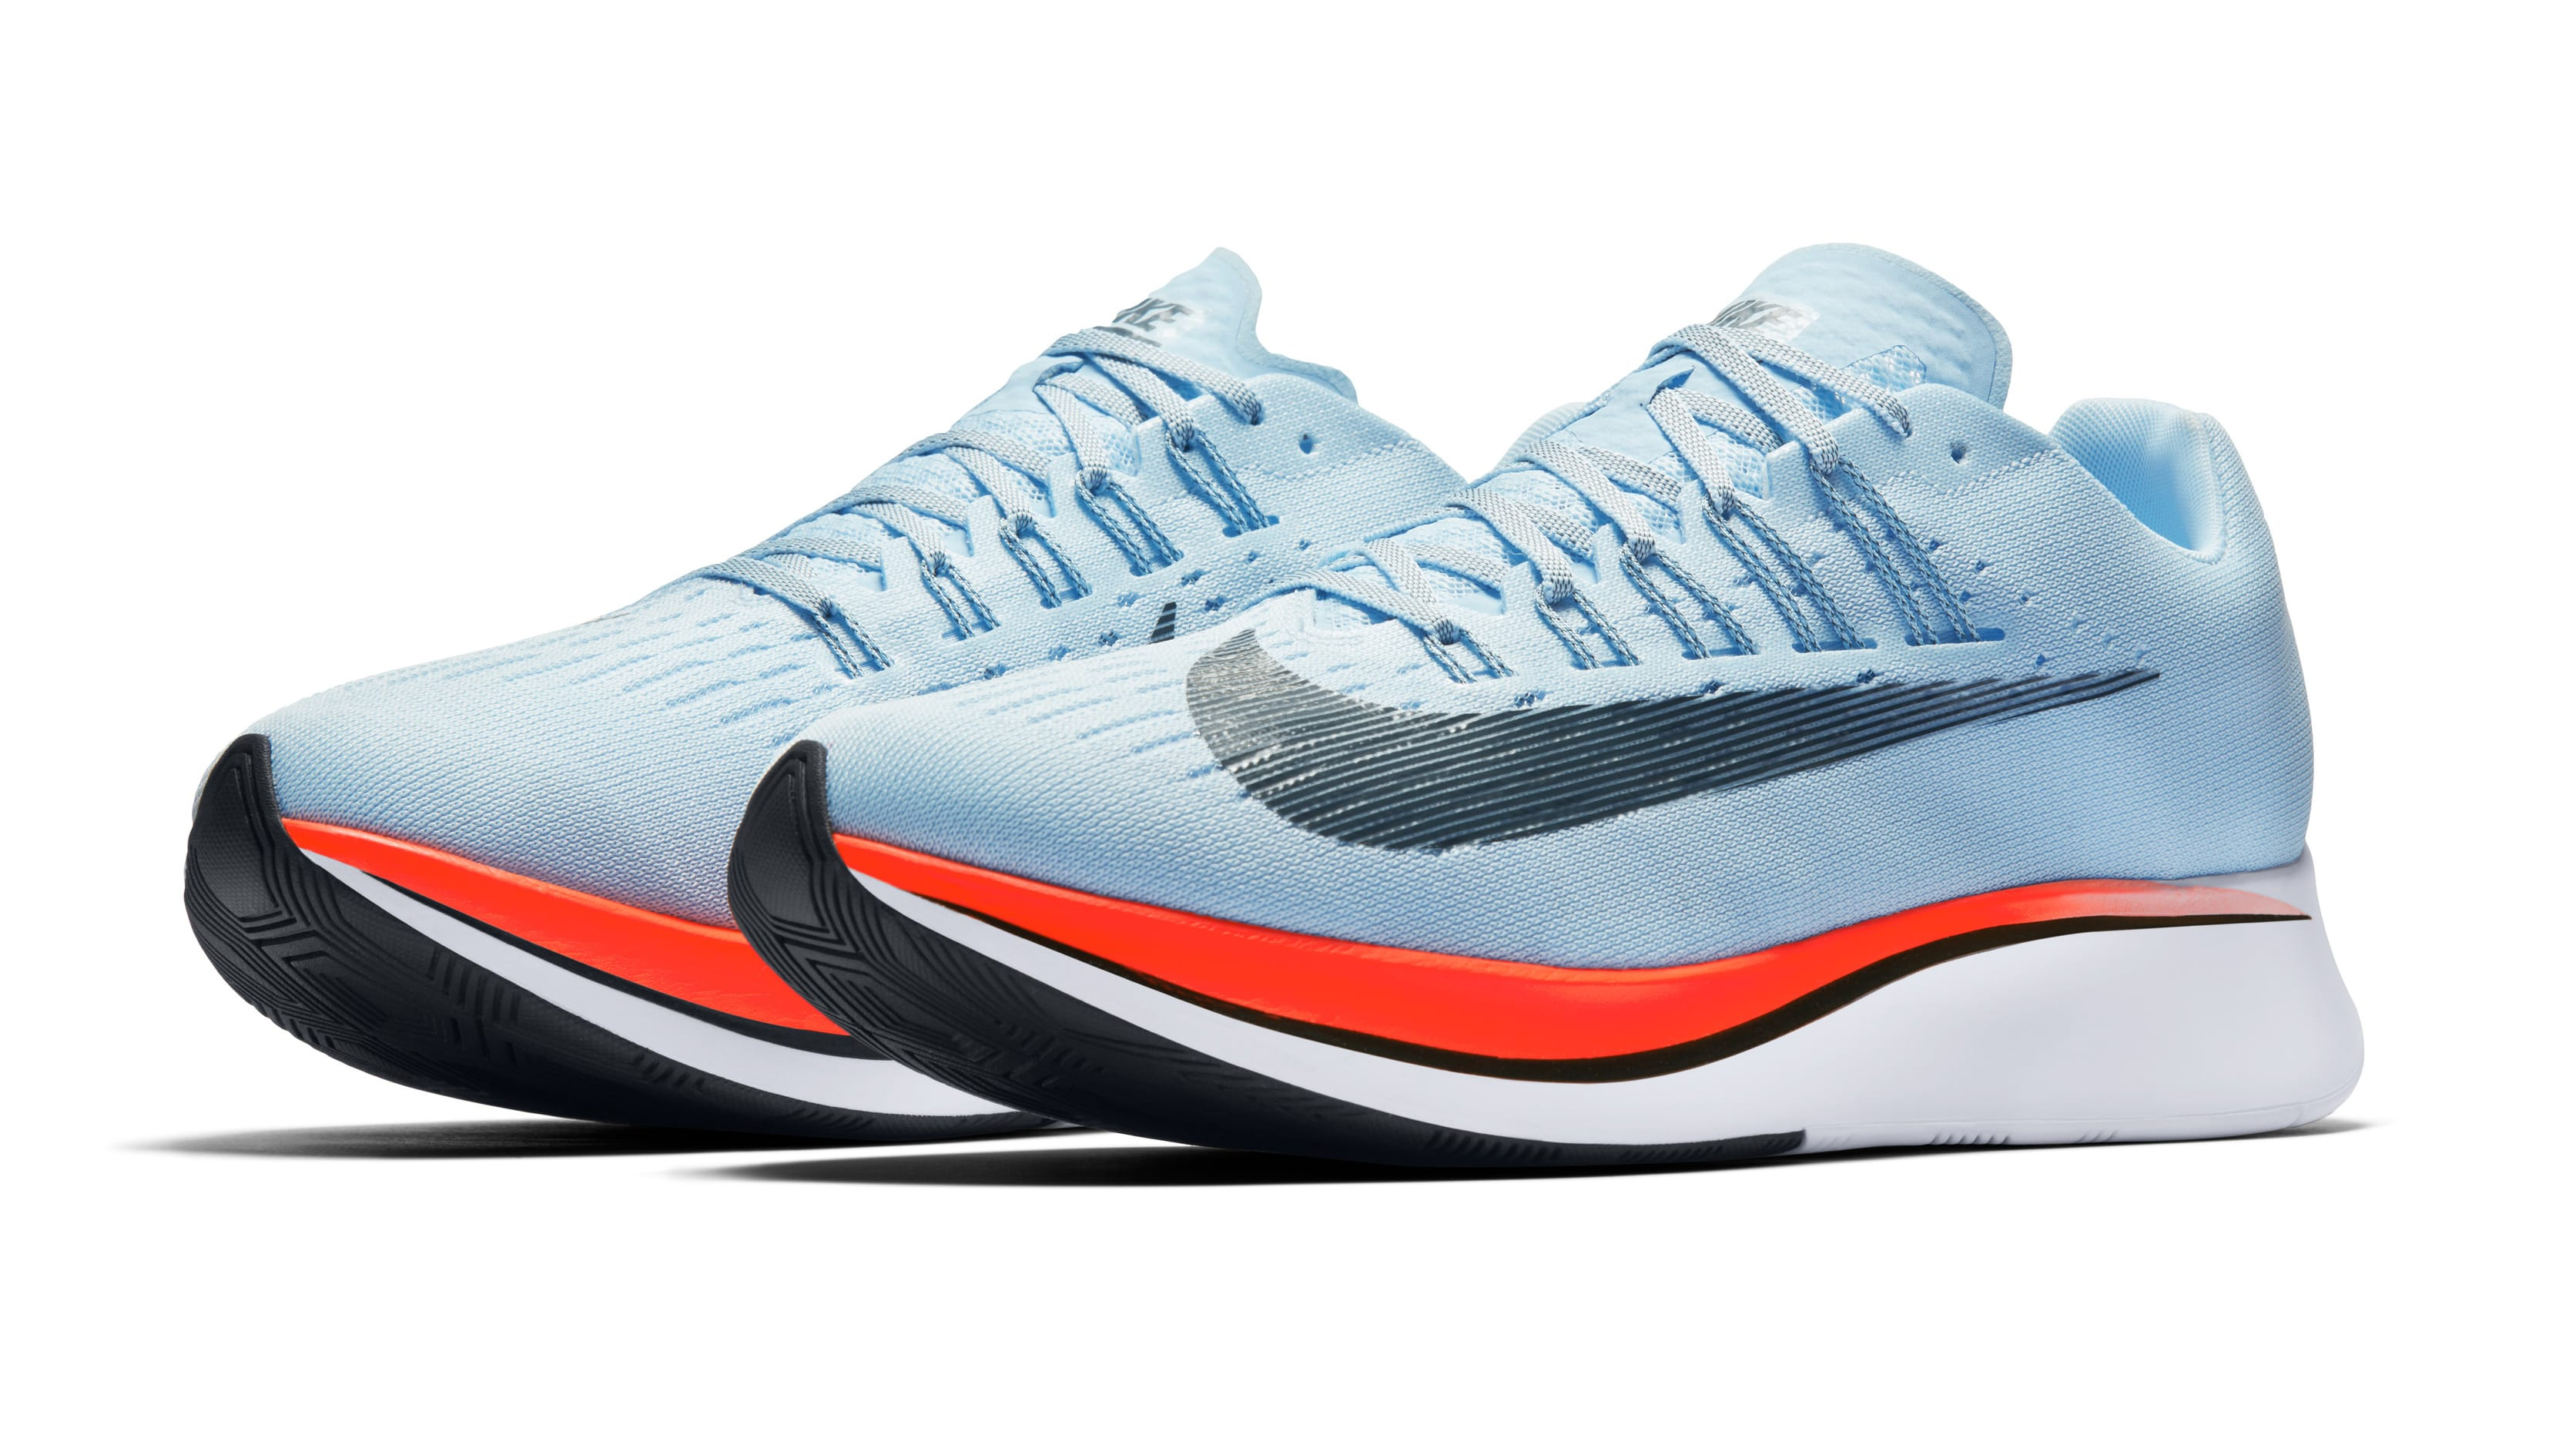 Best Half Marathon Running Shoes